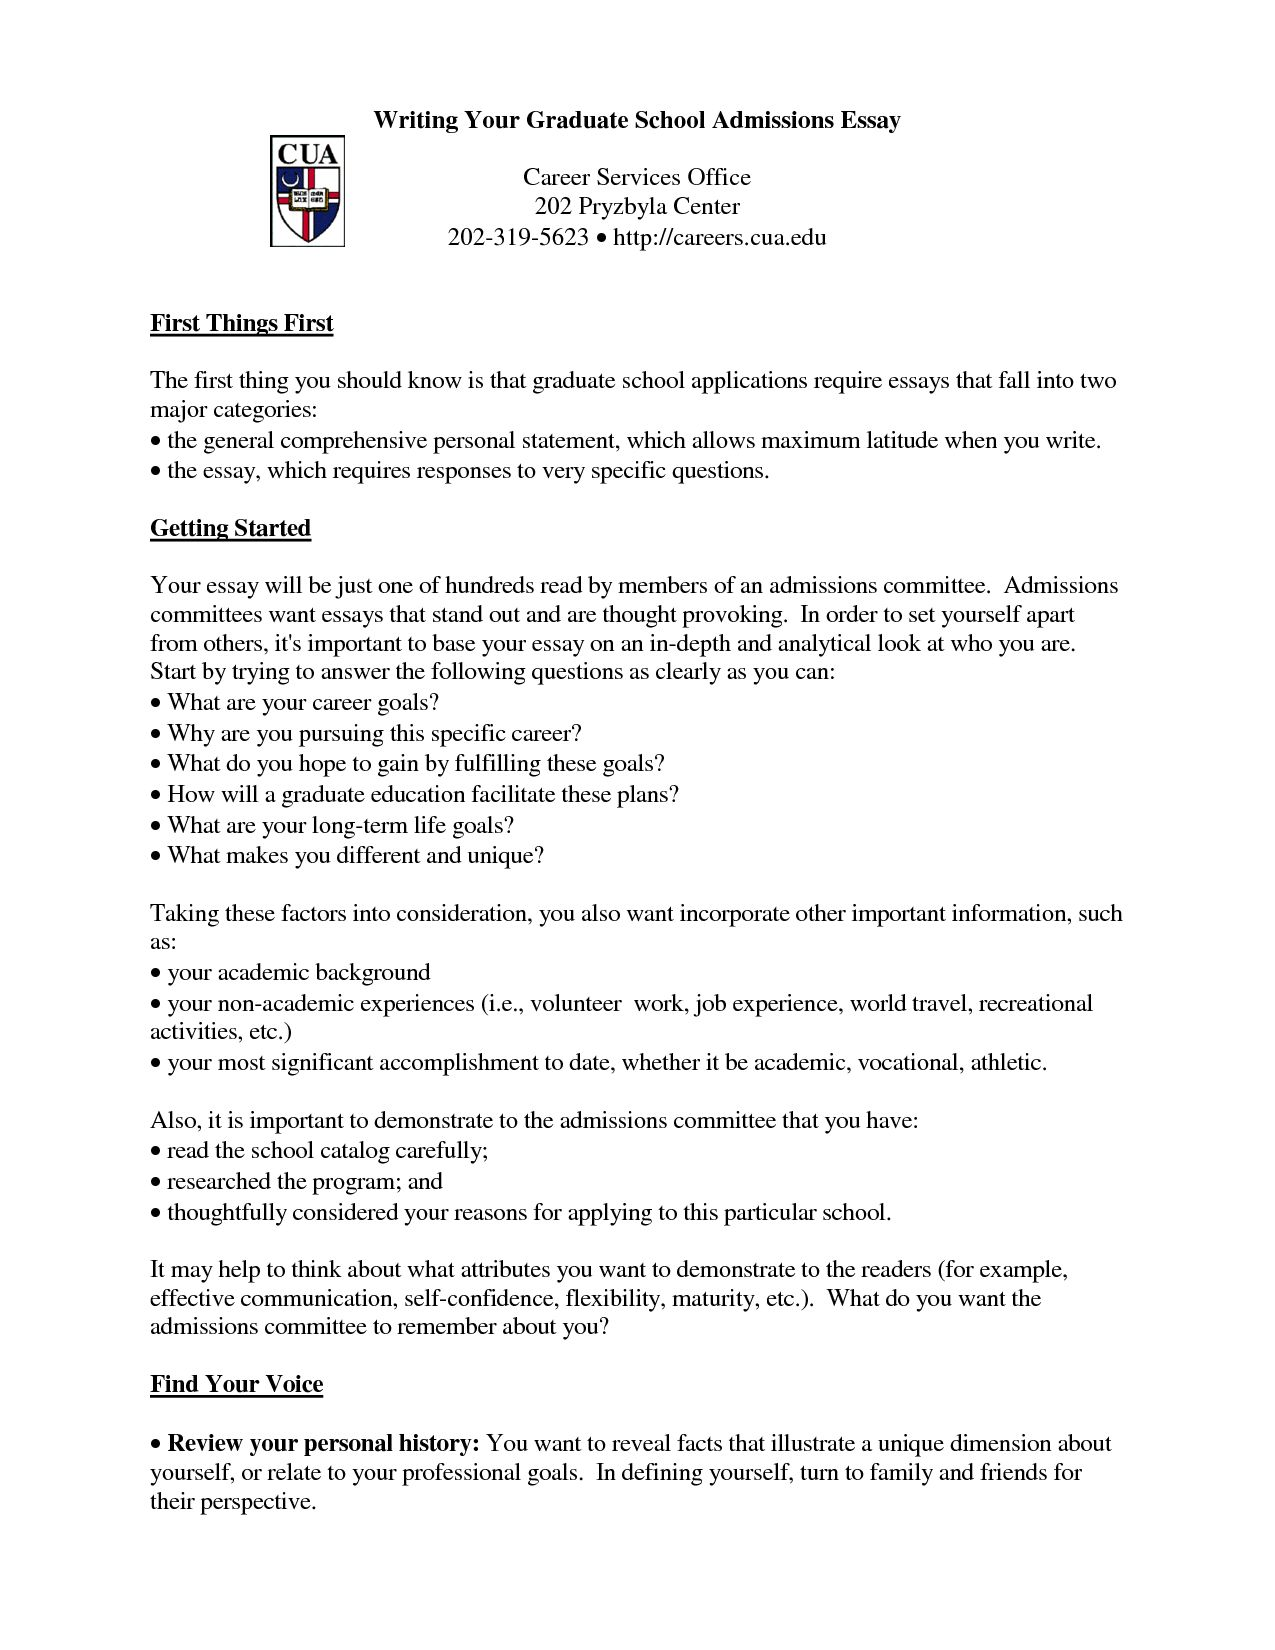 Graduate school admission cover letter